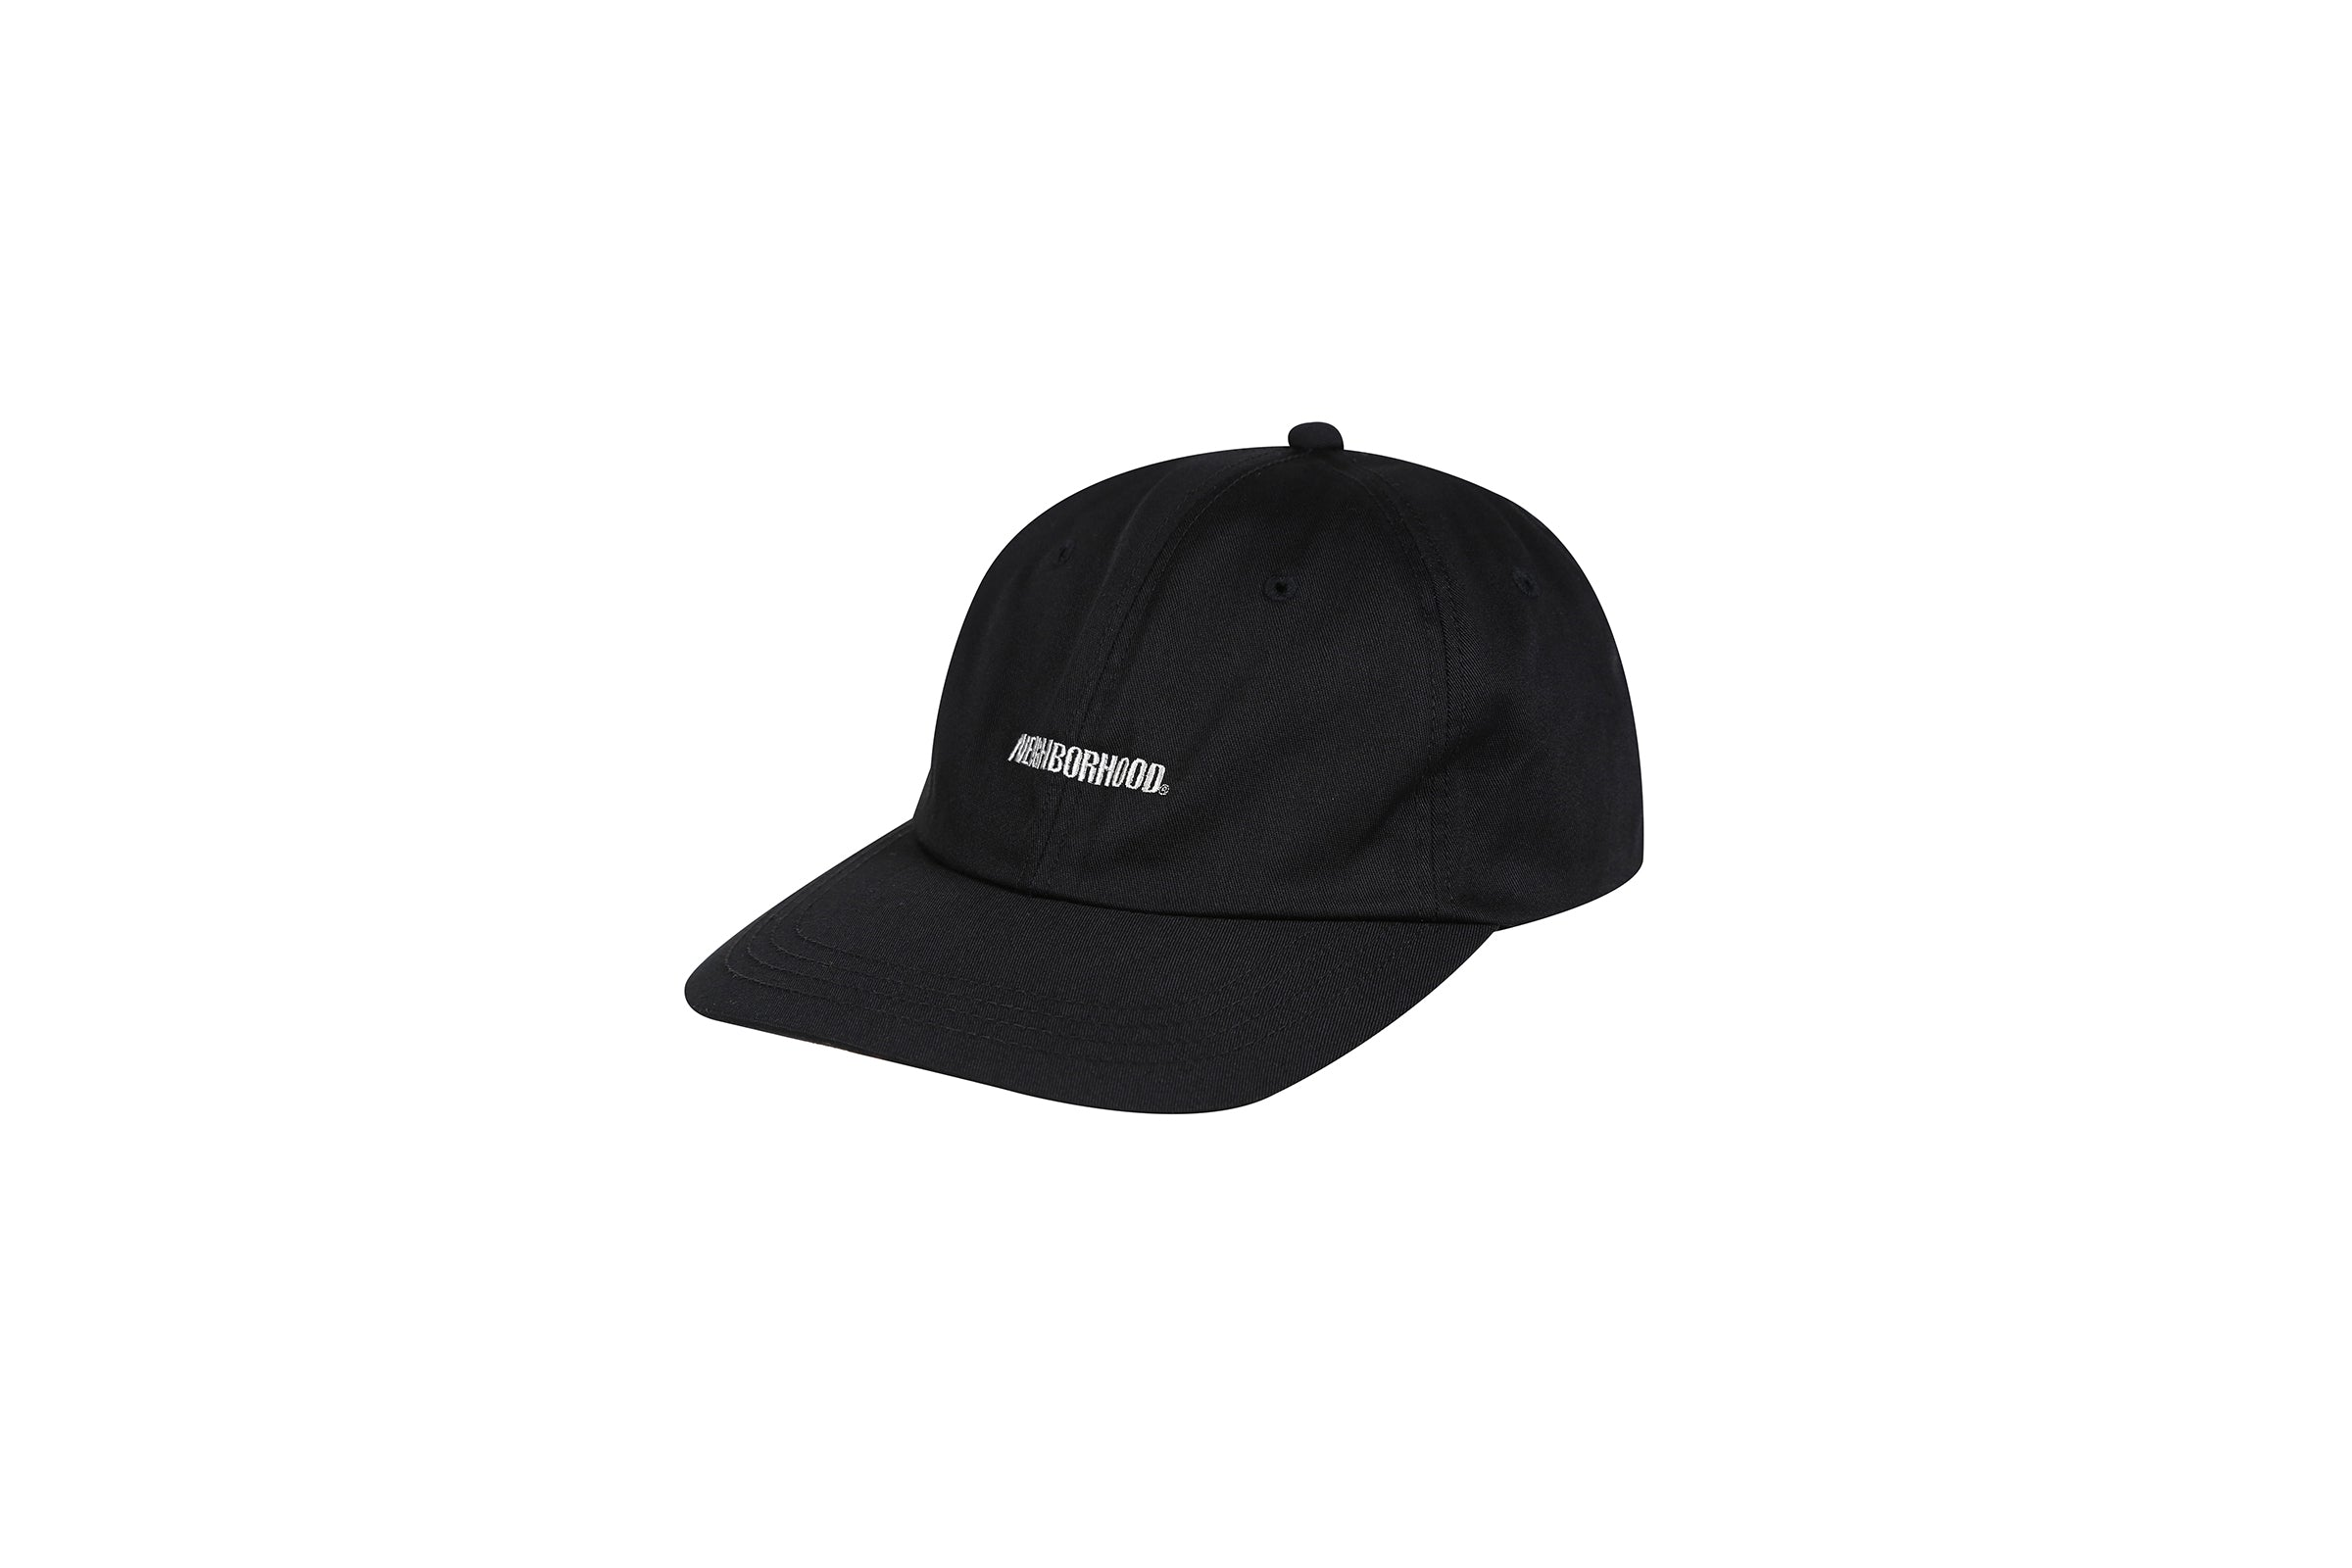 Neighborhood Cap